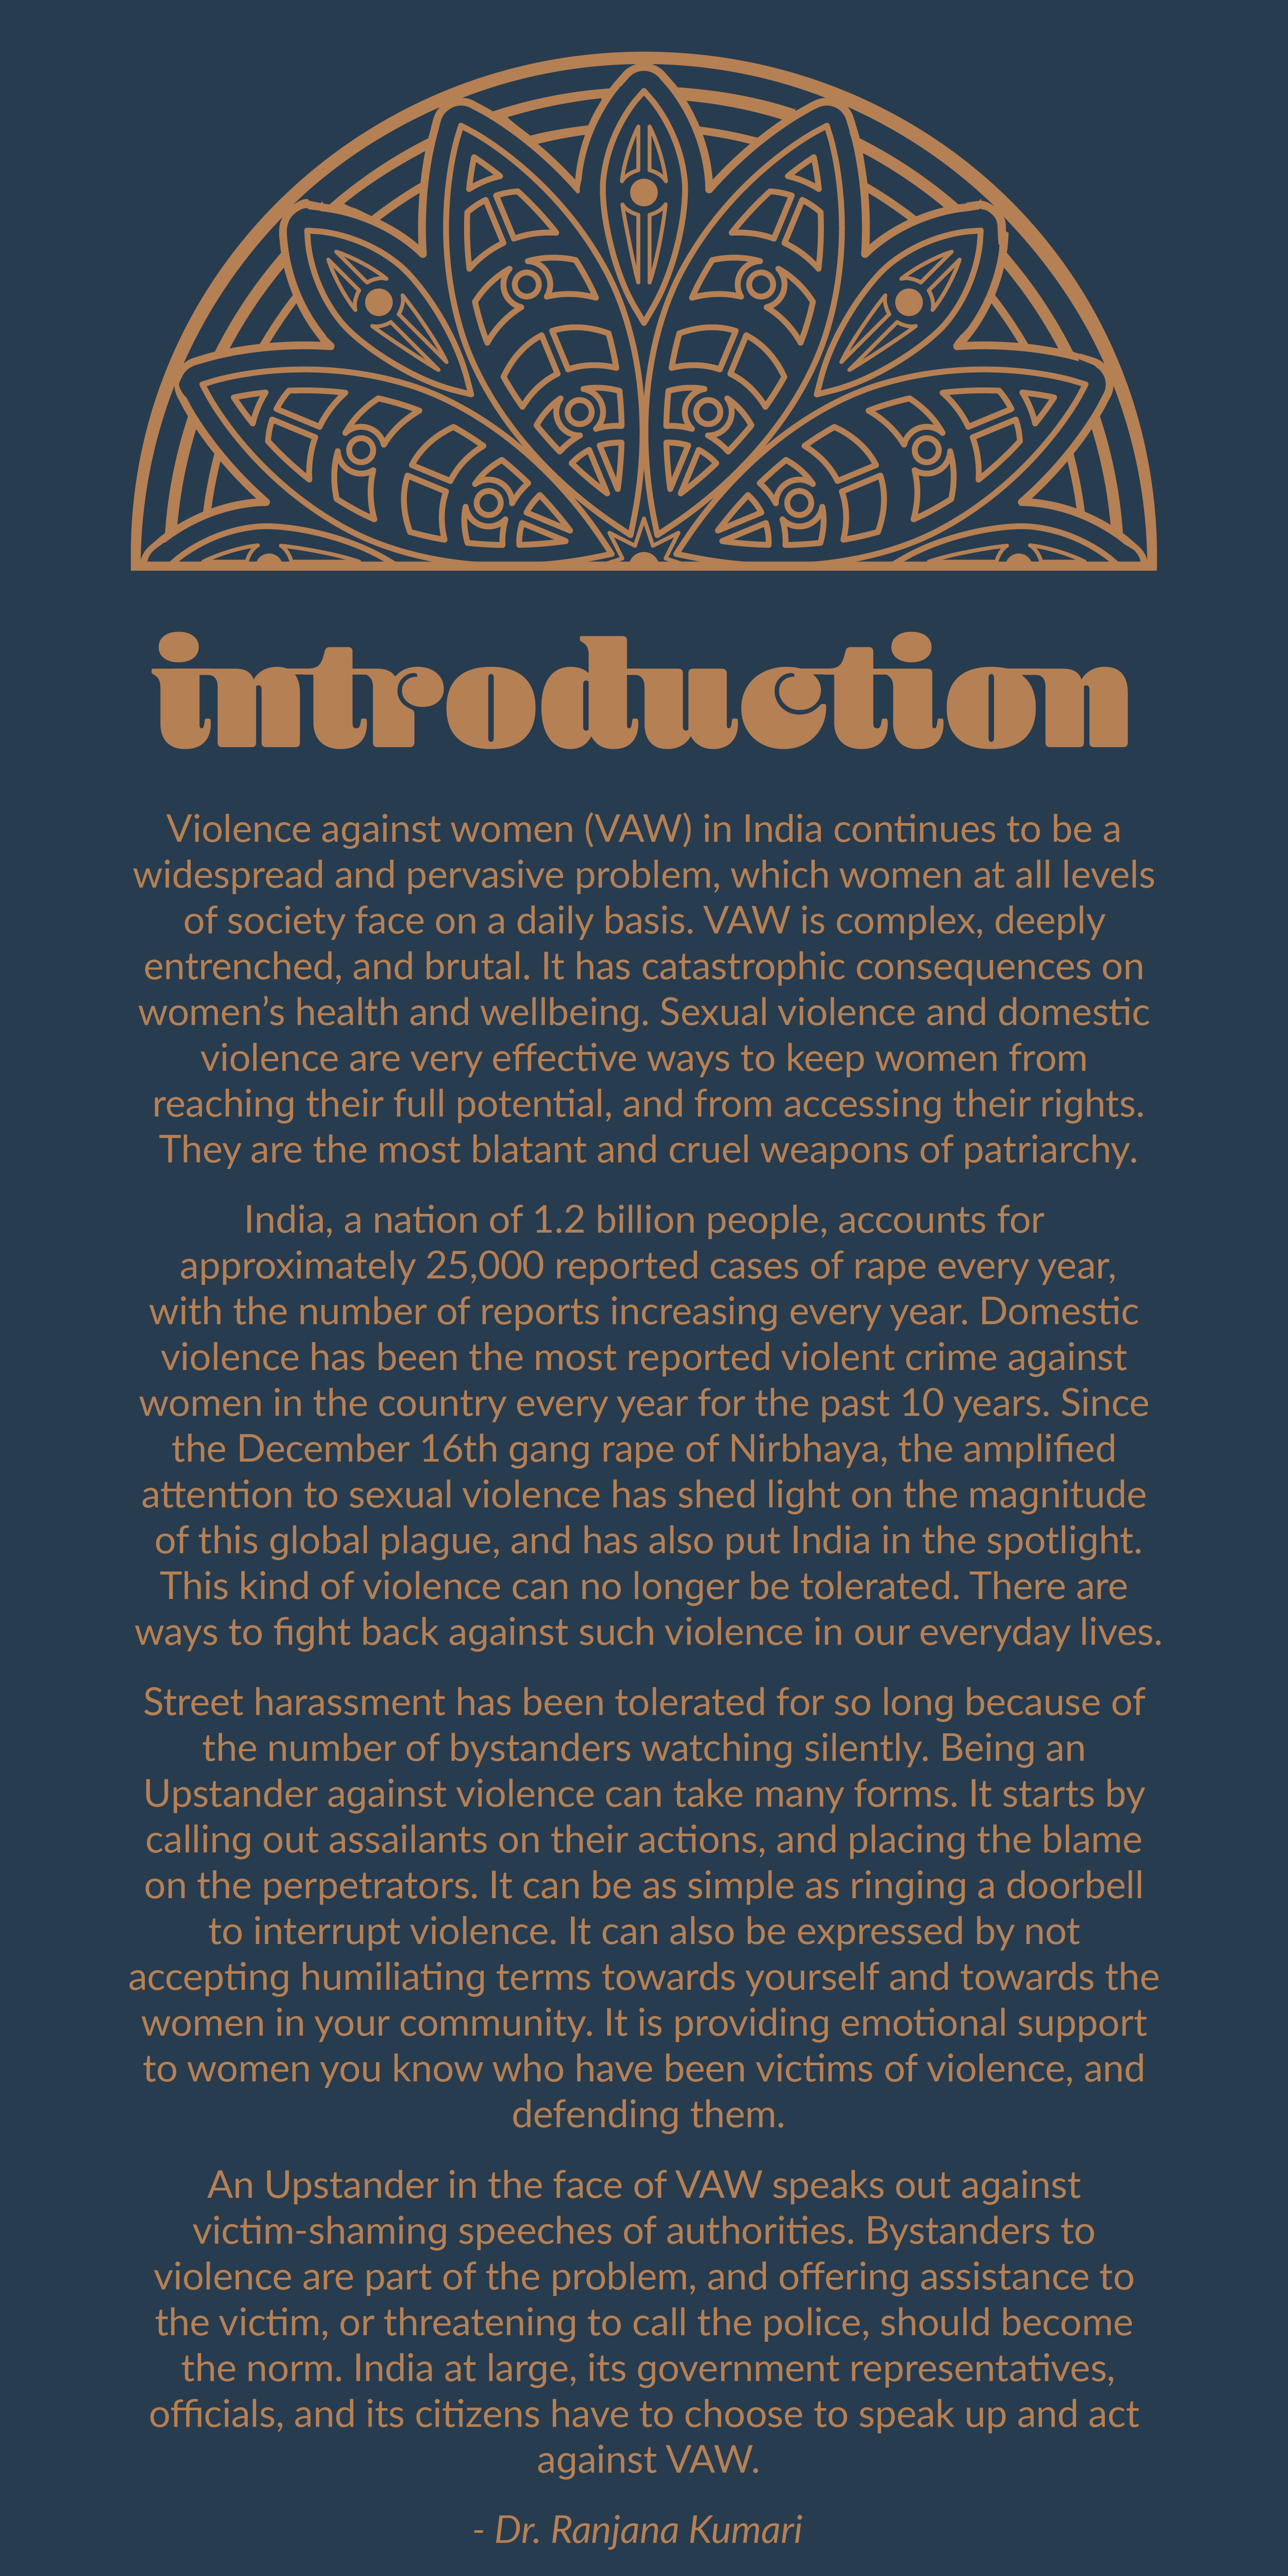 A2_UE_Intro-EngHind_EXHIBITION INTRO ENGLISH.png